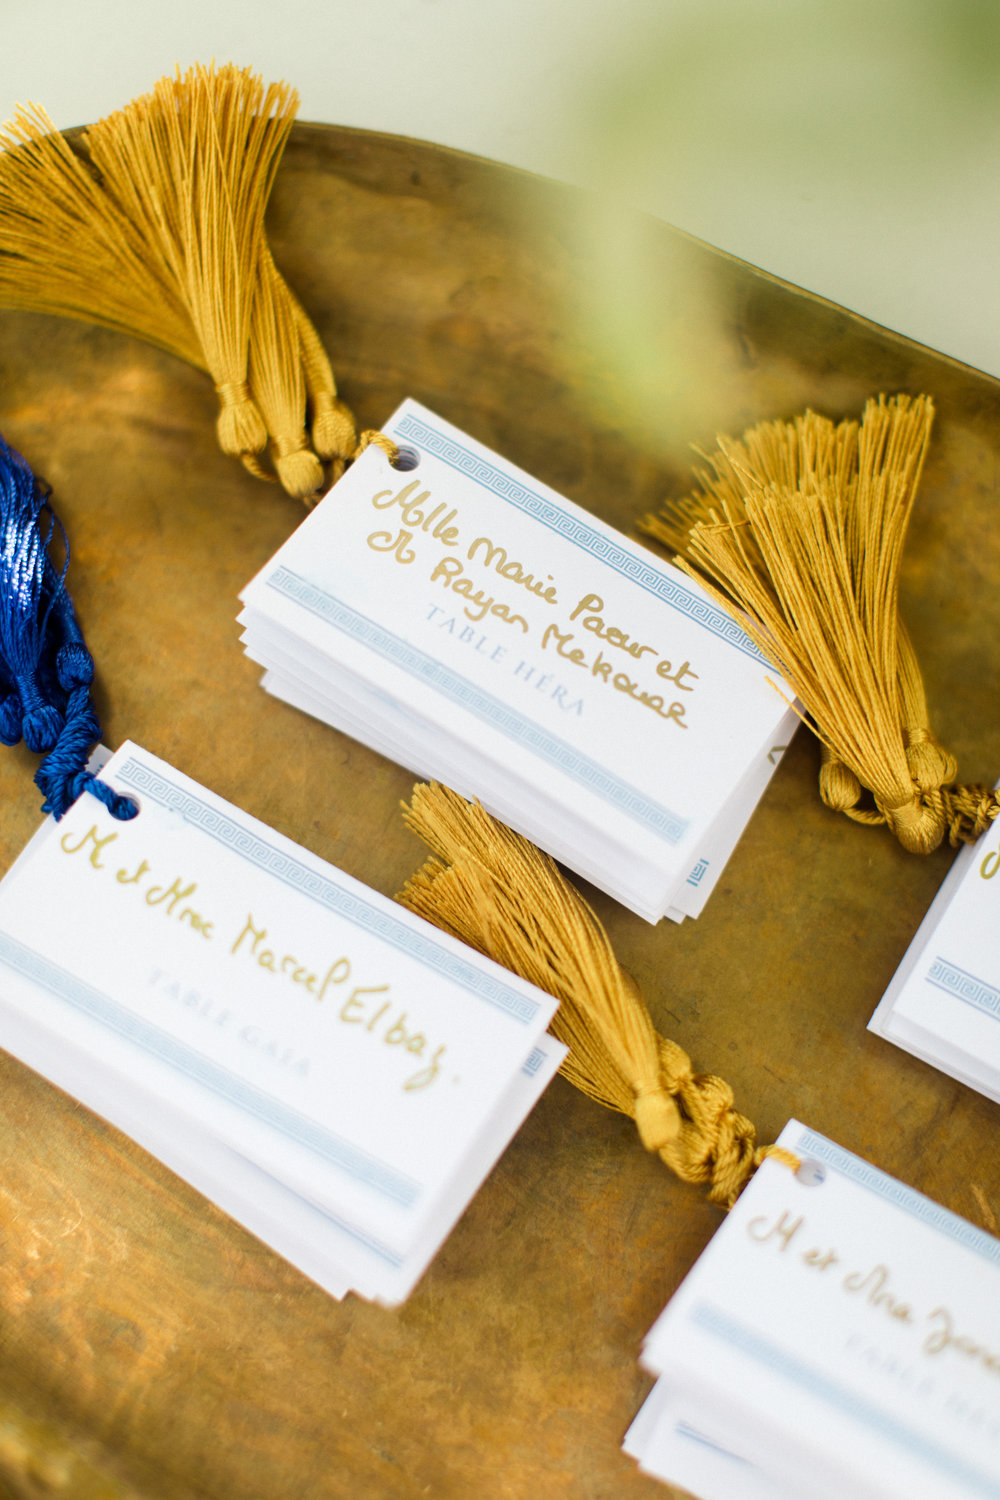 wedding-greek-theme-mythology-escort-cards-stationery-olive-branches-event-planning-silkentile-firm-royal-imperial-myconian-collection